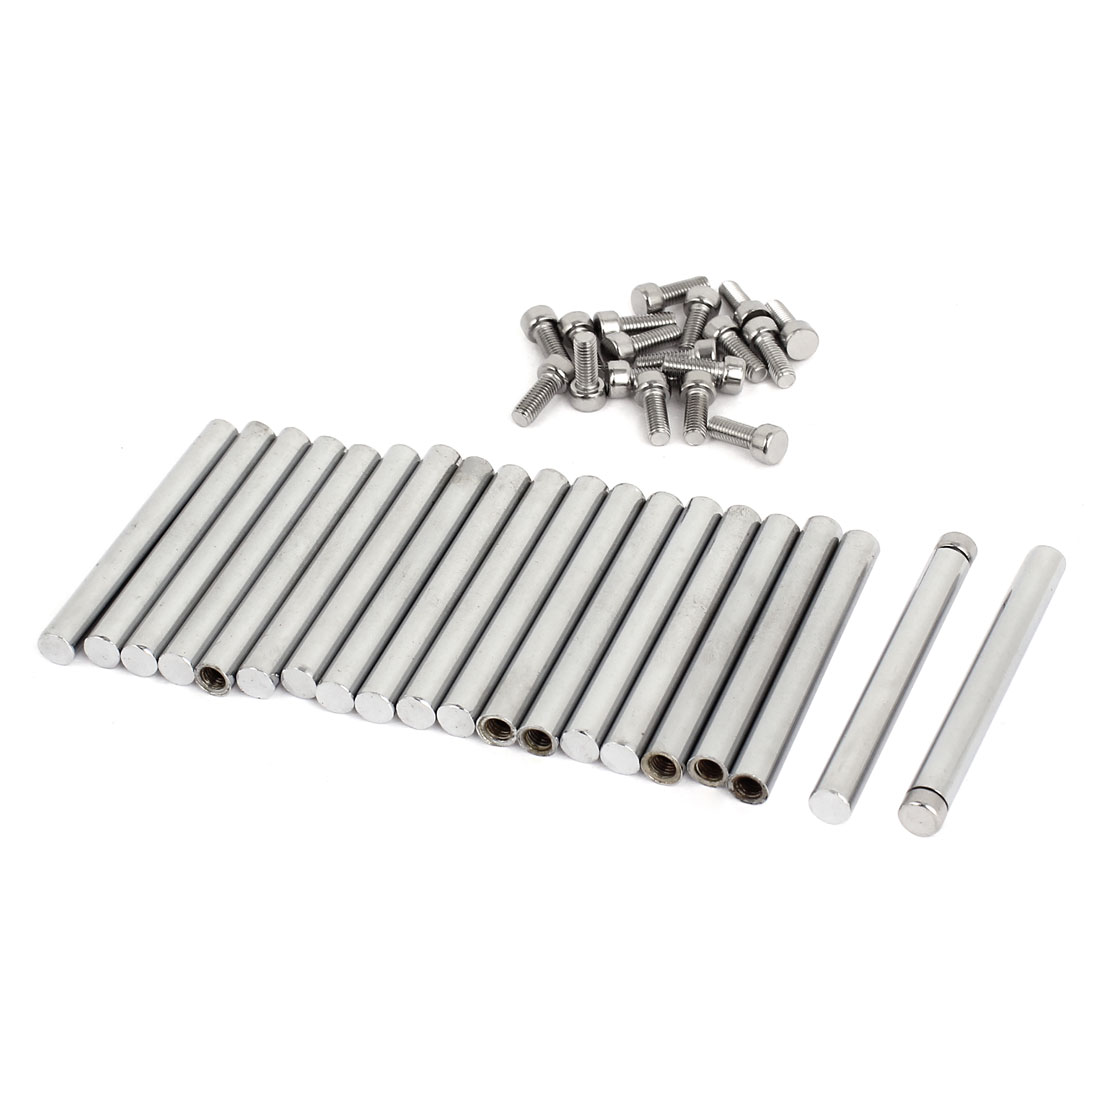 8mm x 75mm Stainless Steel Standoff Pins Screw Glass Picture Poster Frame Hanger 20 Pcs